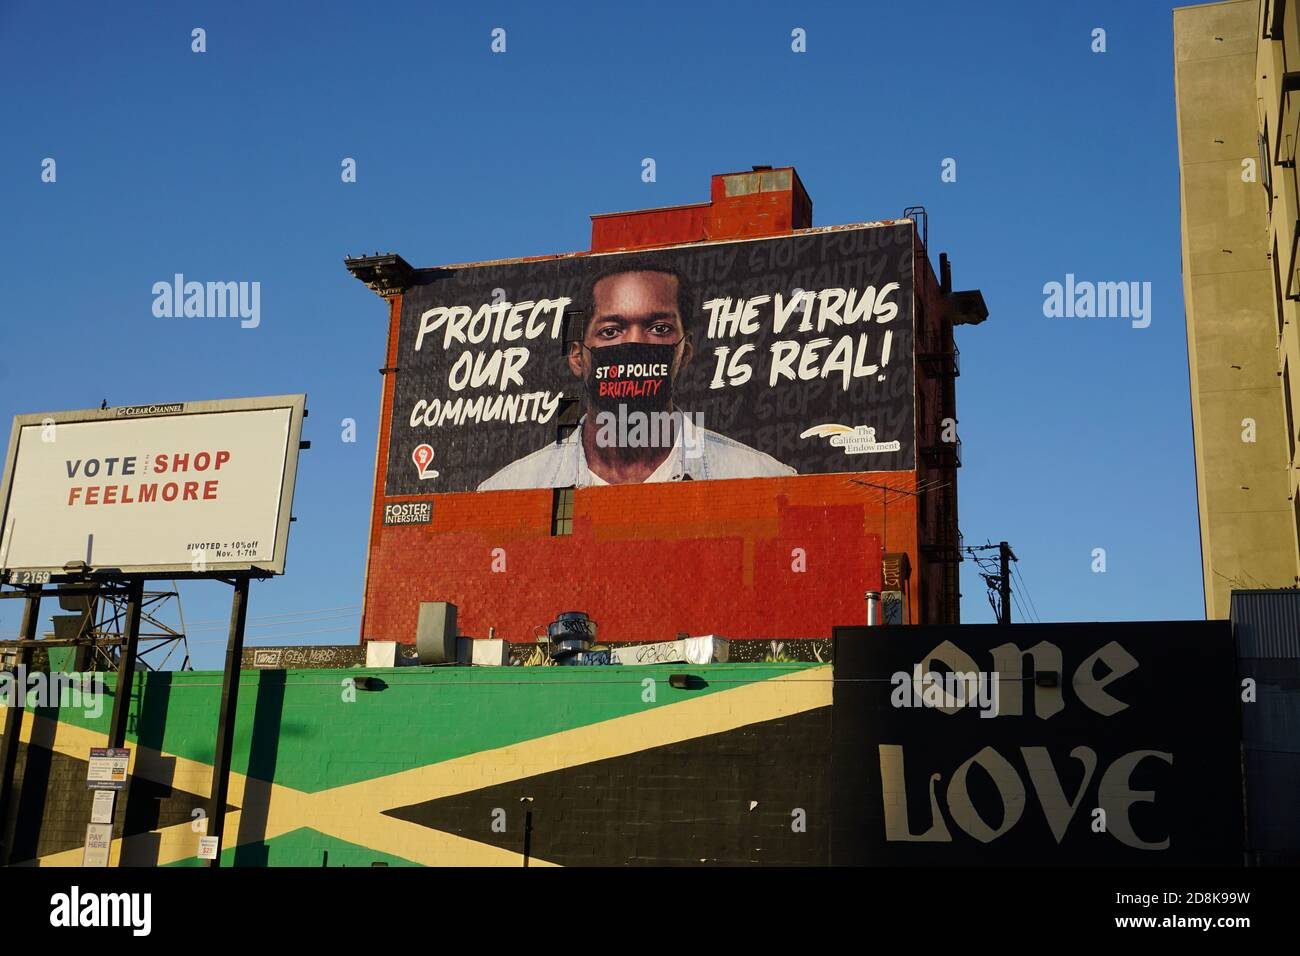 Billboards in downtown Oakland. Billboard for black community to raise covid public health awareness. Black Lives Matter. Virus is real. Stock Photo